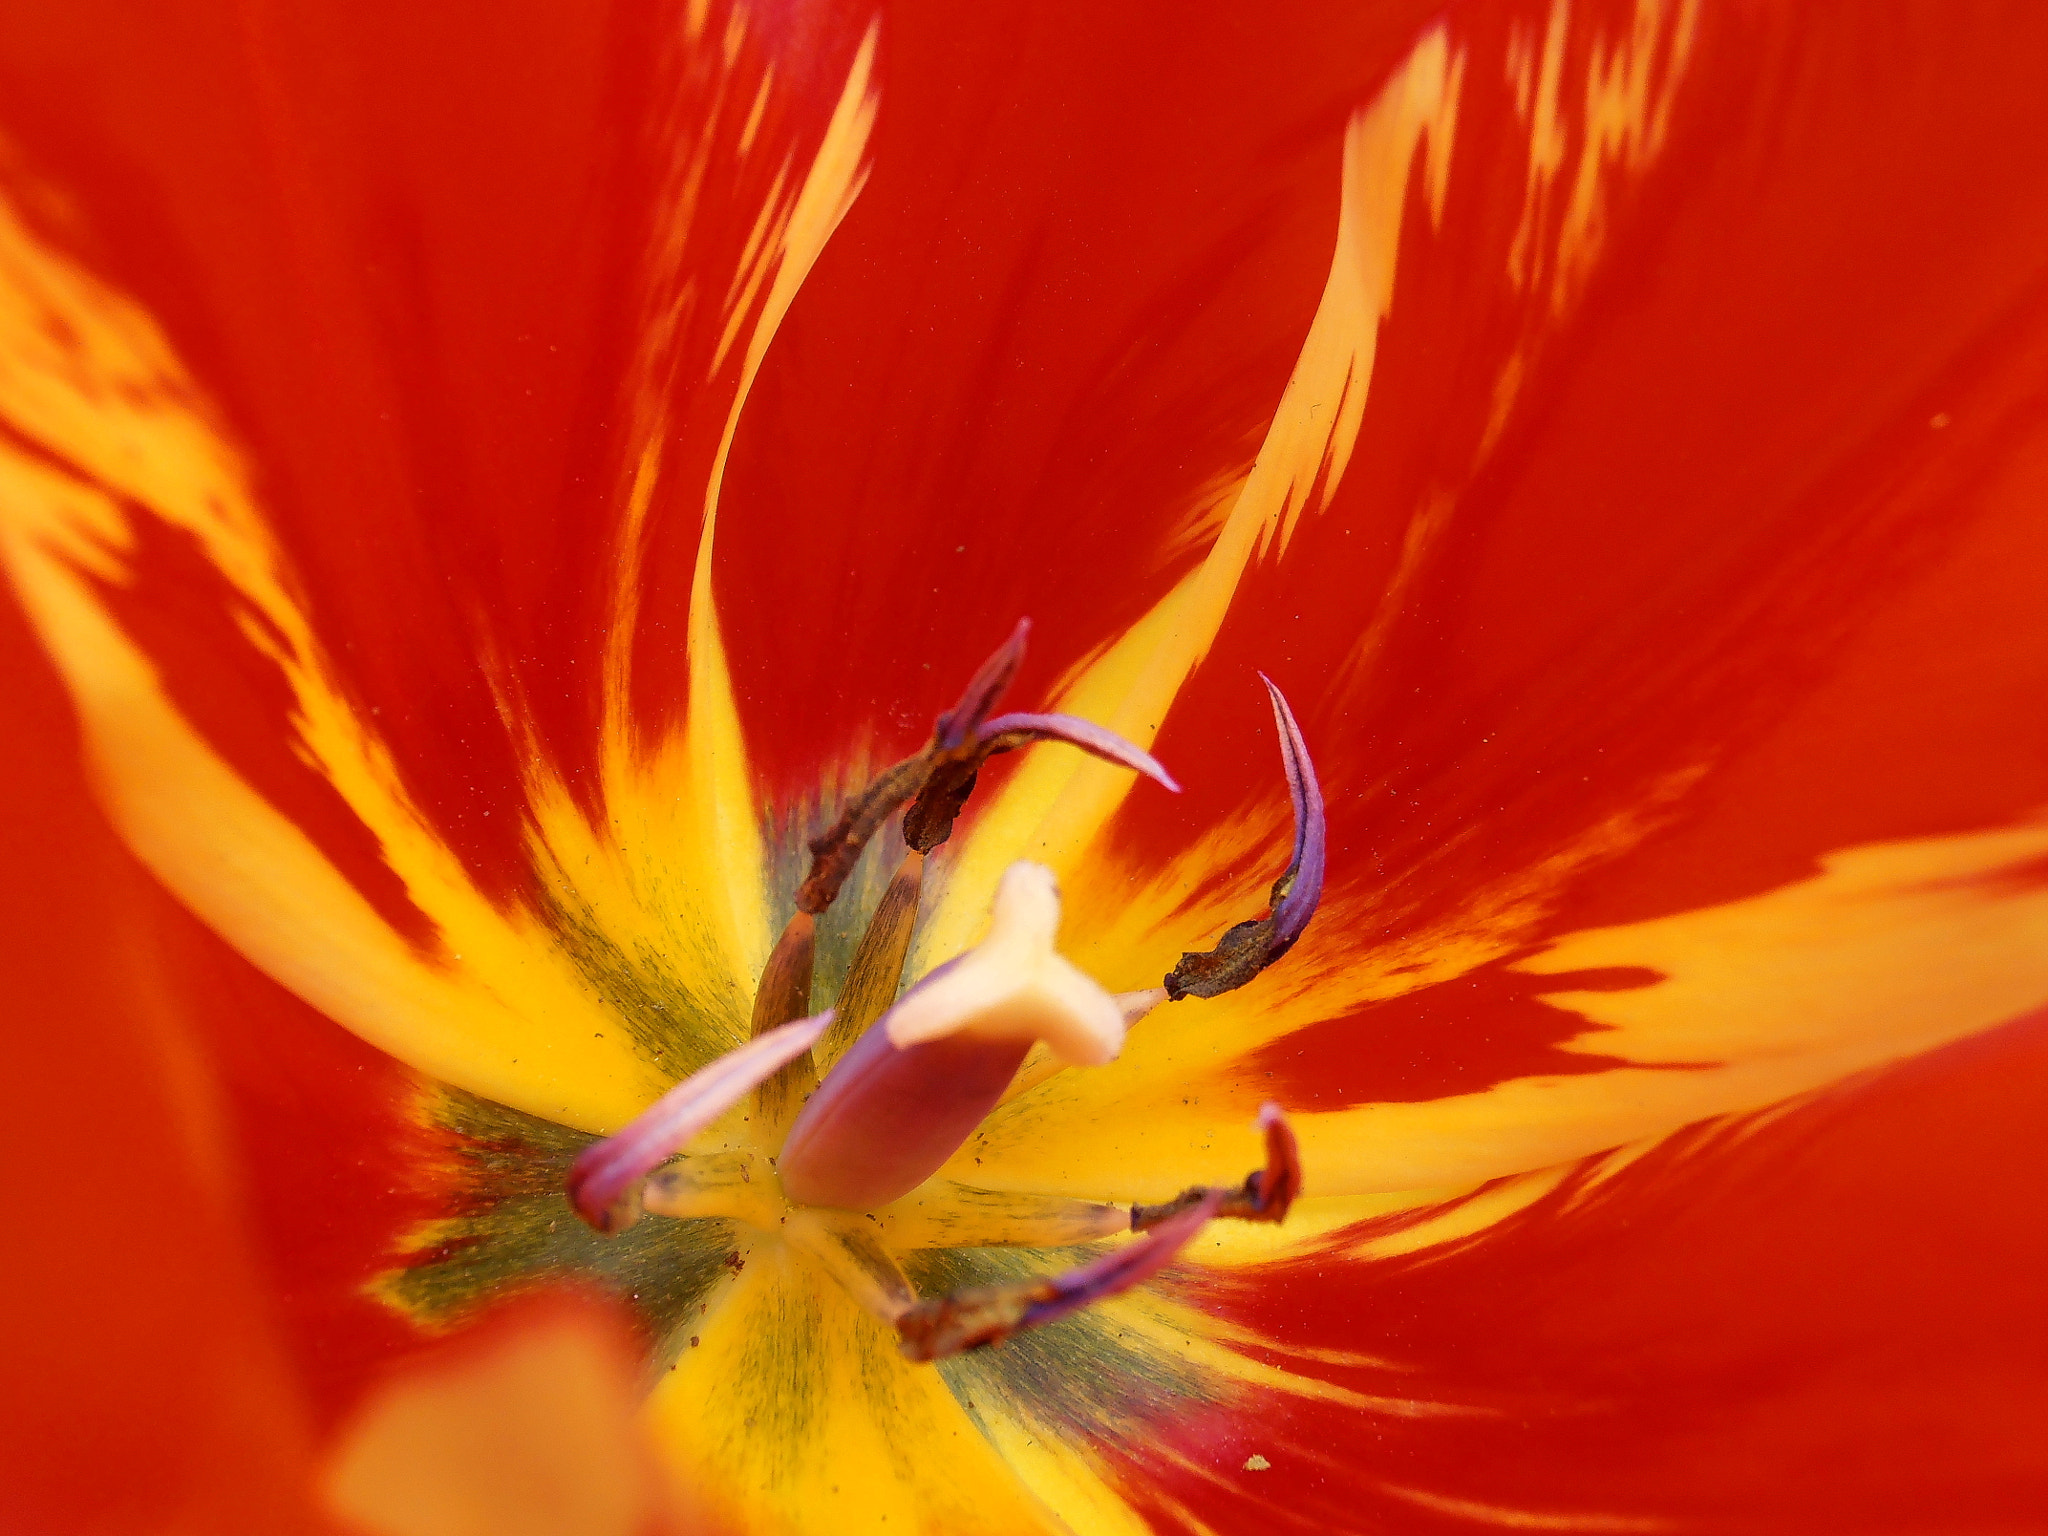 Photograph Red and yellow by Snezana Petrovic on 500px